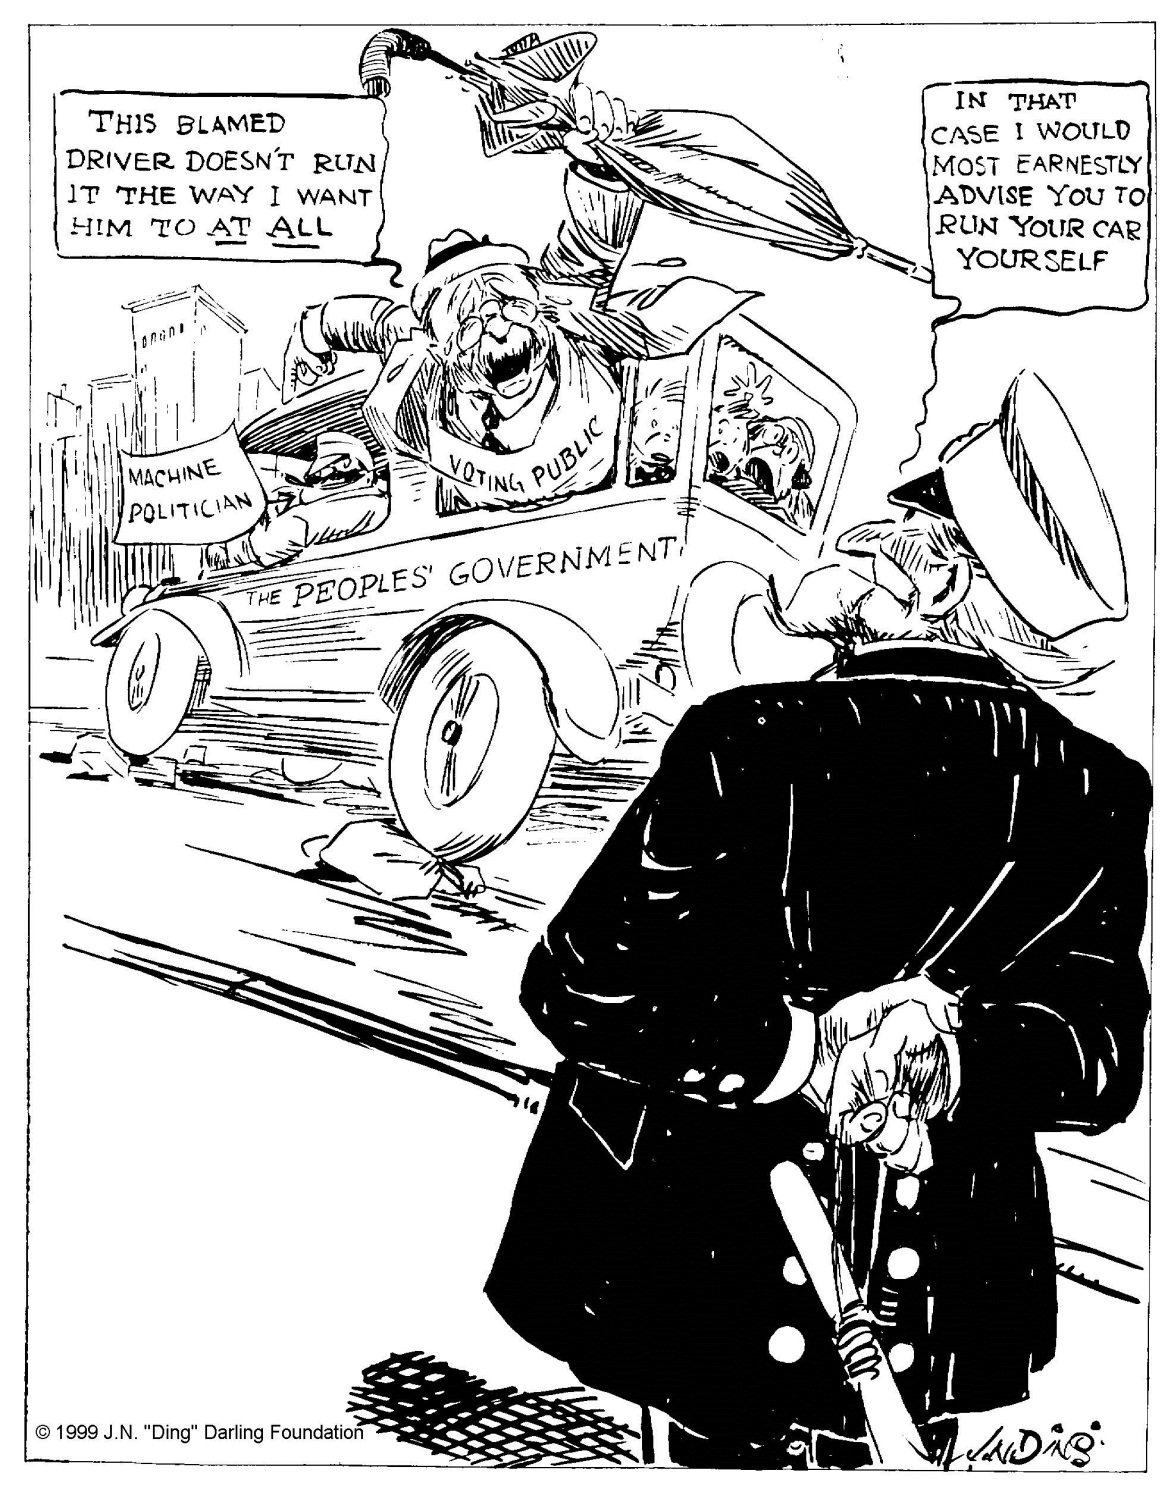 """They make 'em now so anyone of average intelligence can drive if he prefers,"" by ""Ding"" Darling, The Des Moines Register, December 3, 1922. Courtesy of the Ding Darling Foundation."